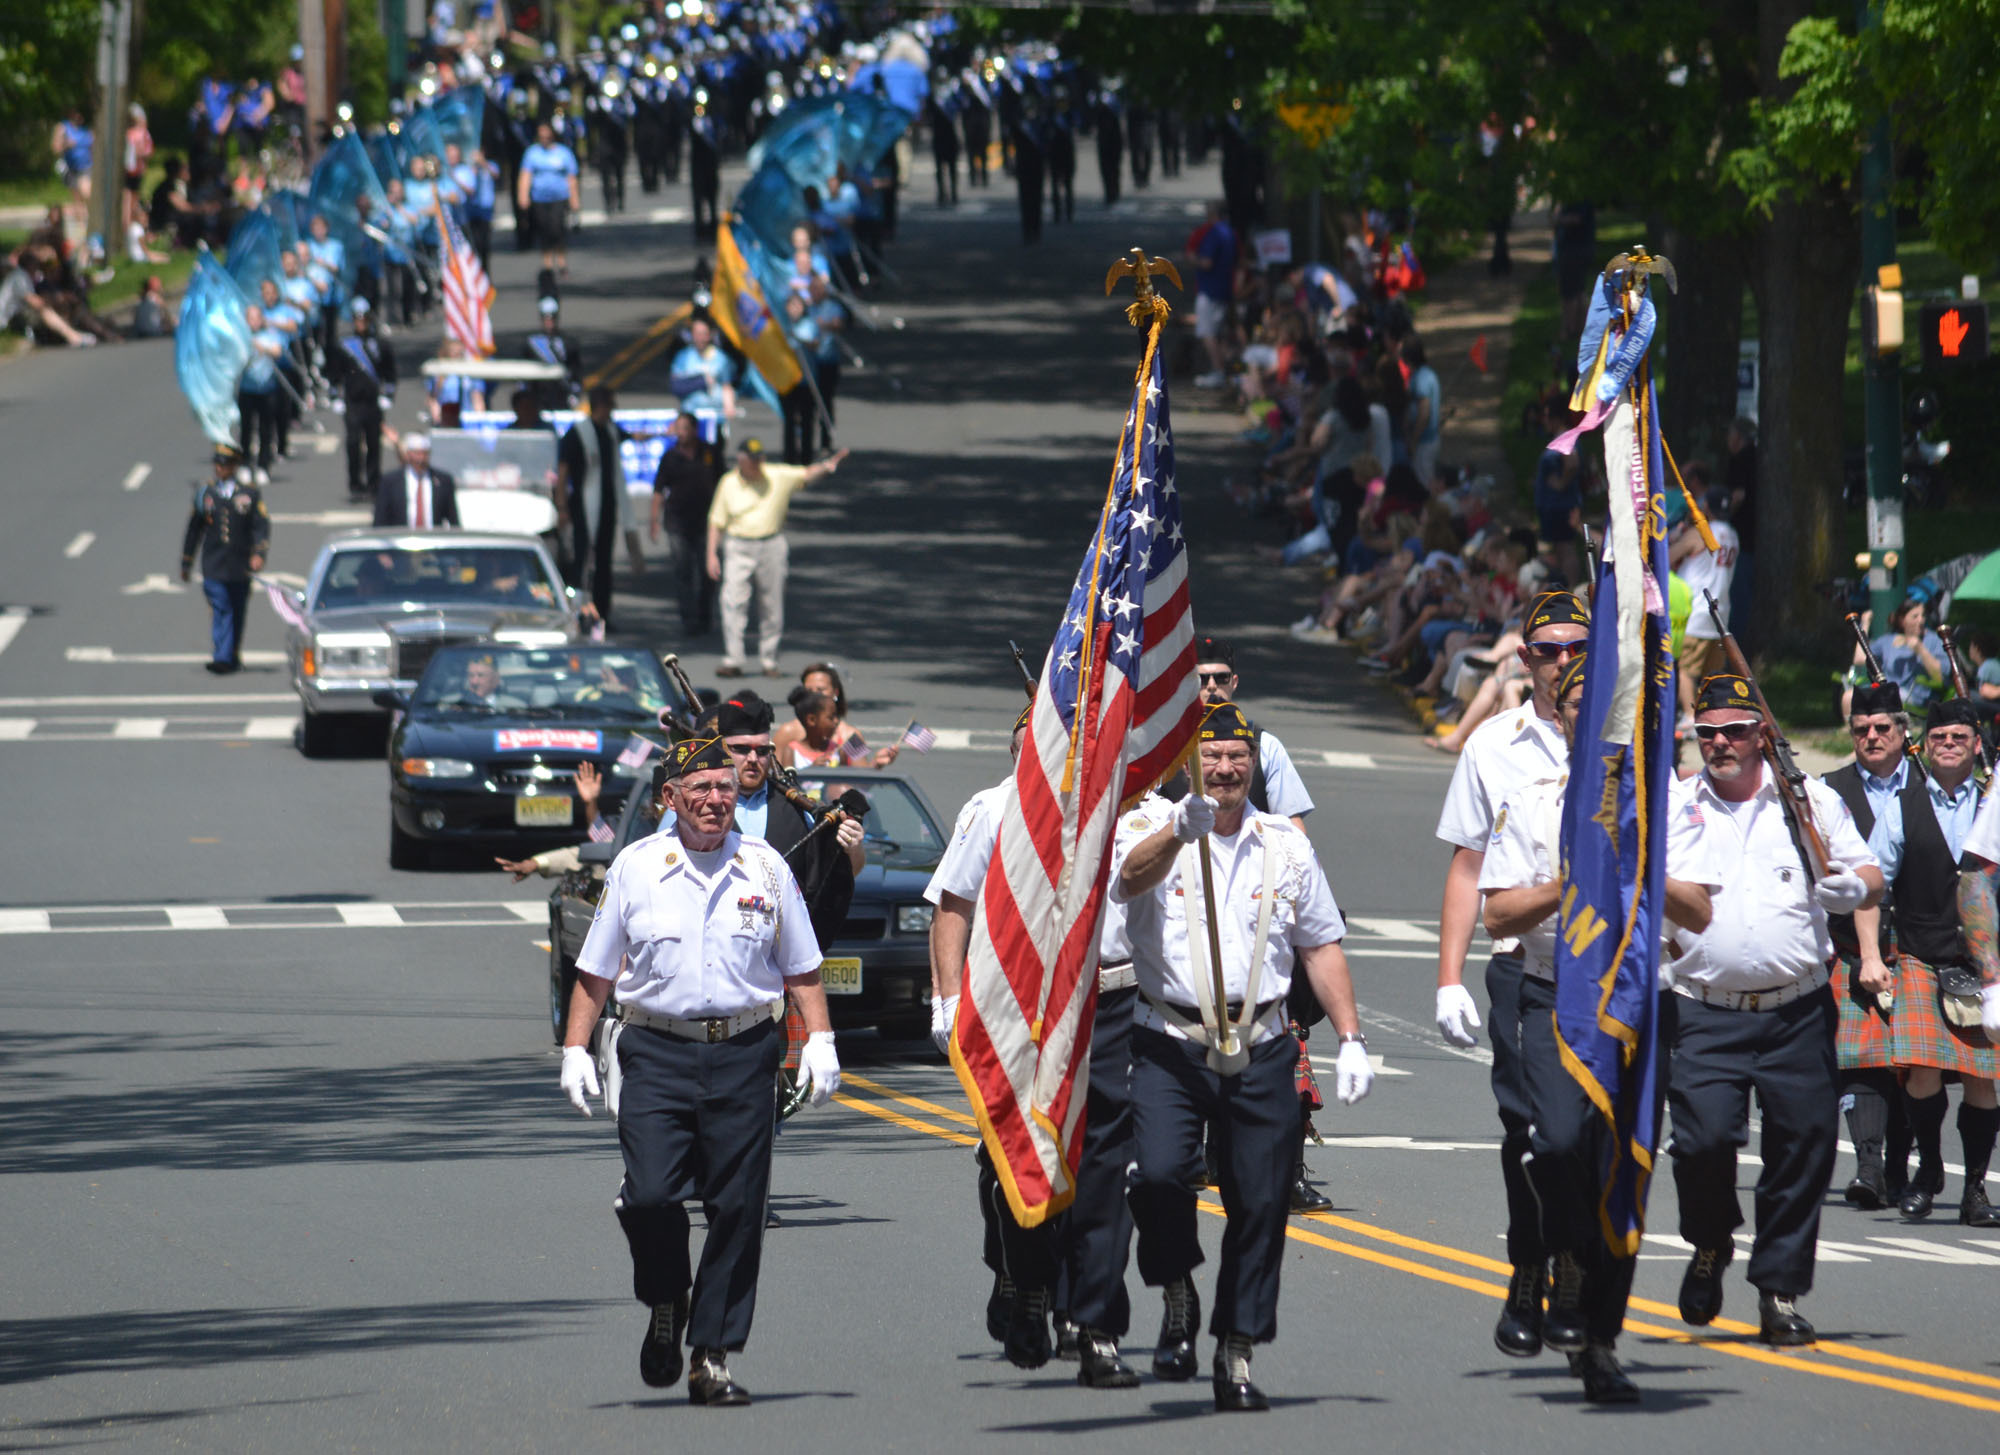 35bee4889097e5118293_Memorial_Day_Parade_-_Horton_photo.jpg